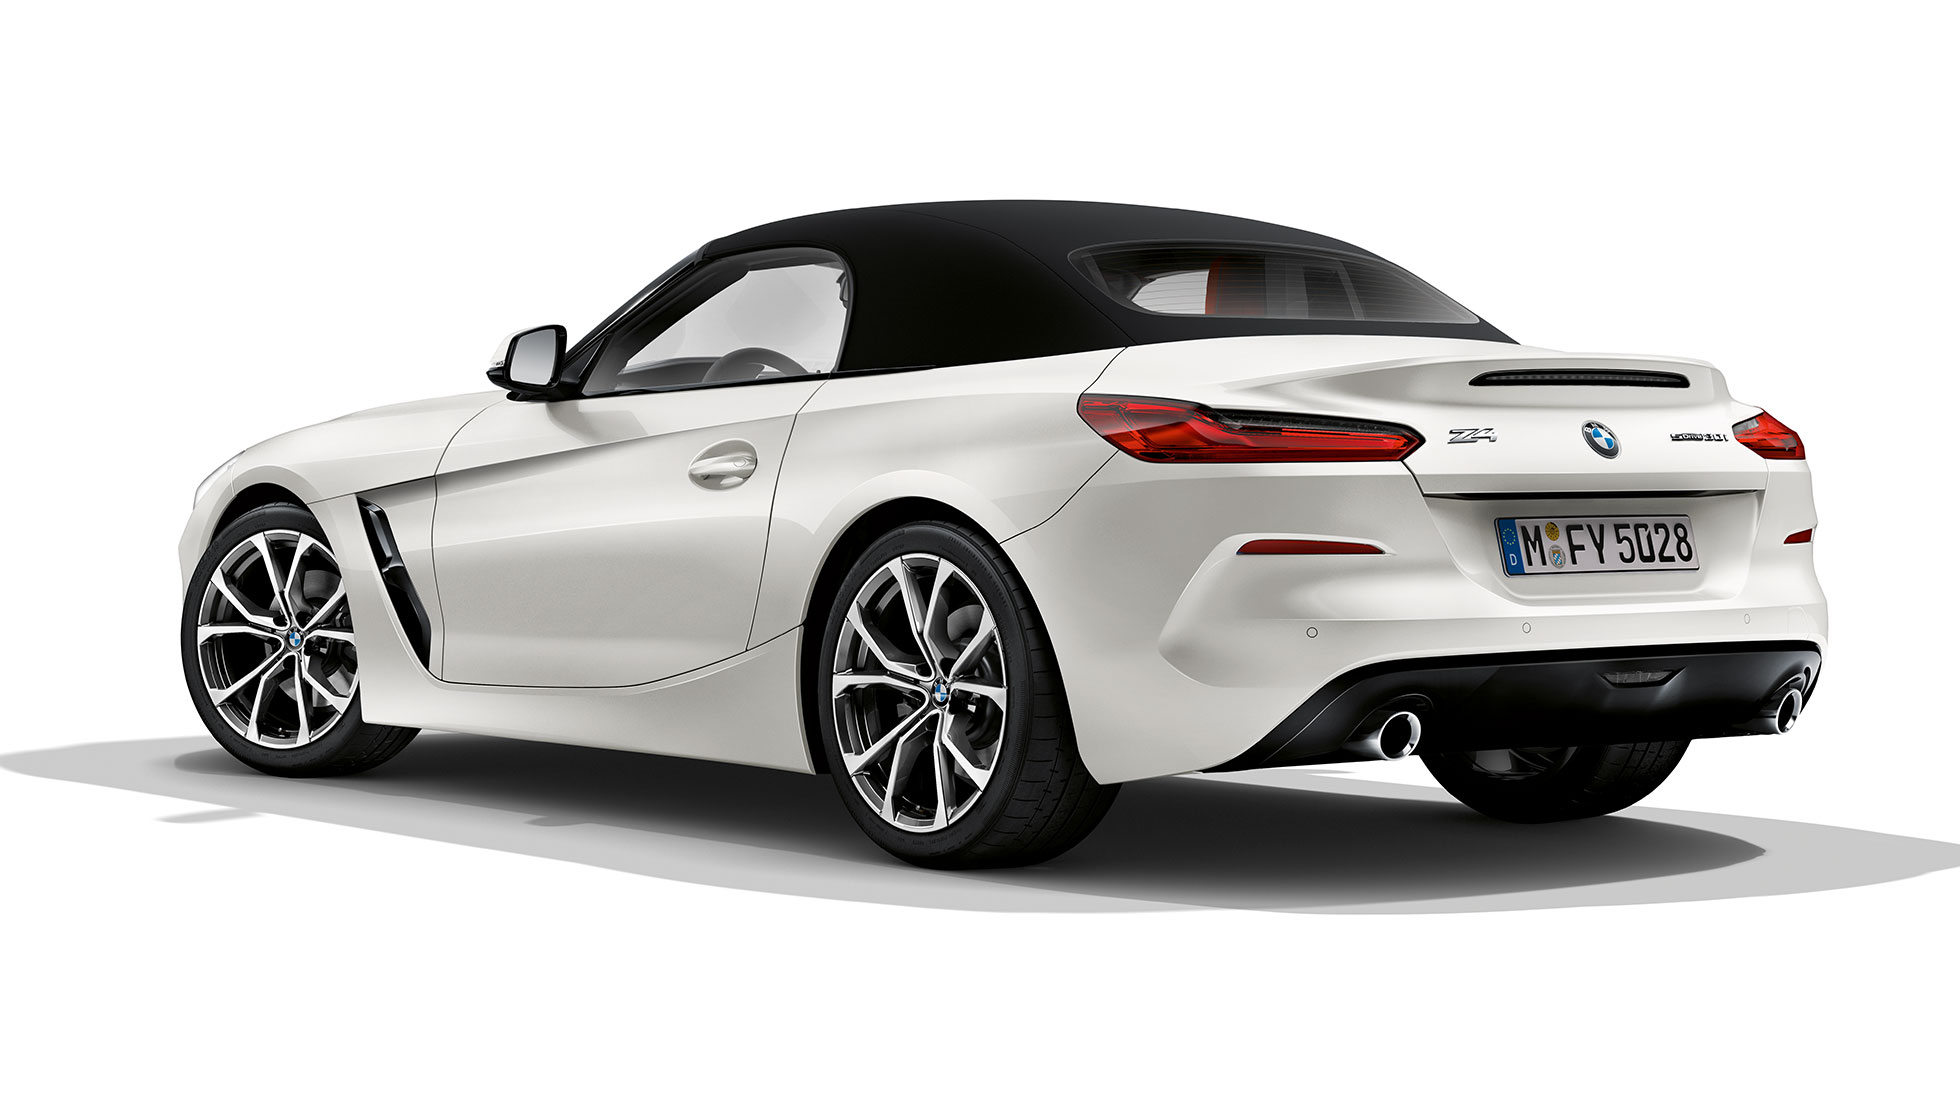 BMW Z4 Roadster Model Sport Linel, three quarter front shot